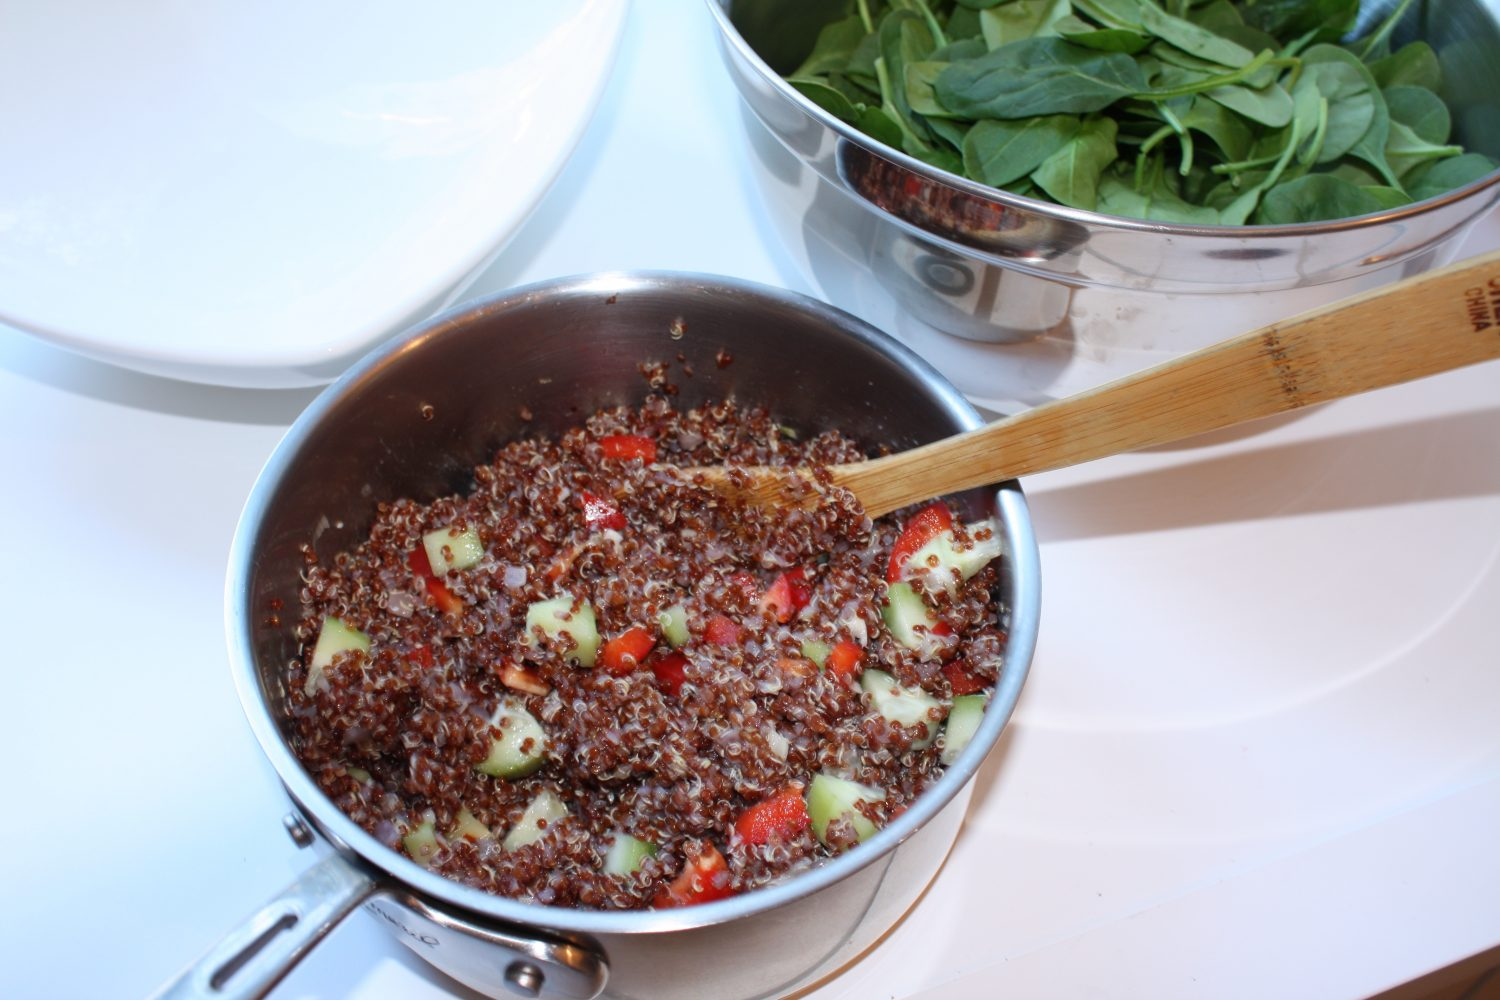 mixing vegetables with red quinoa